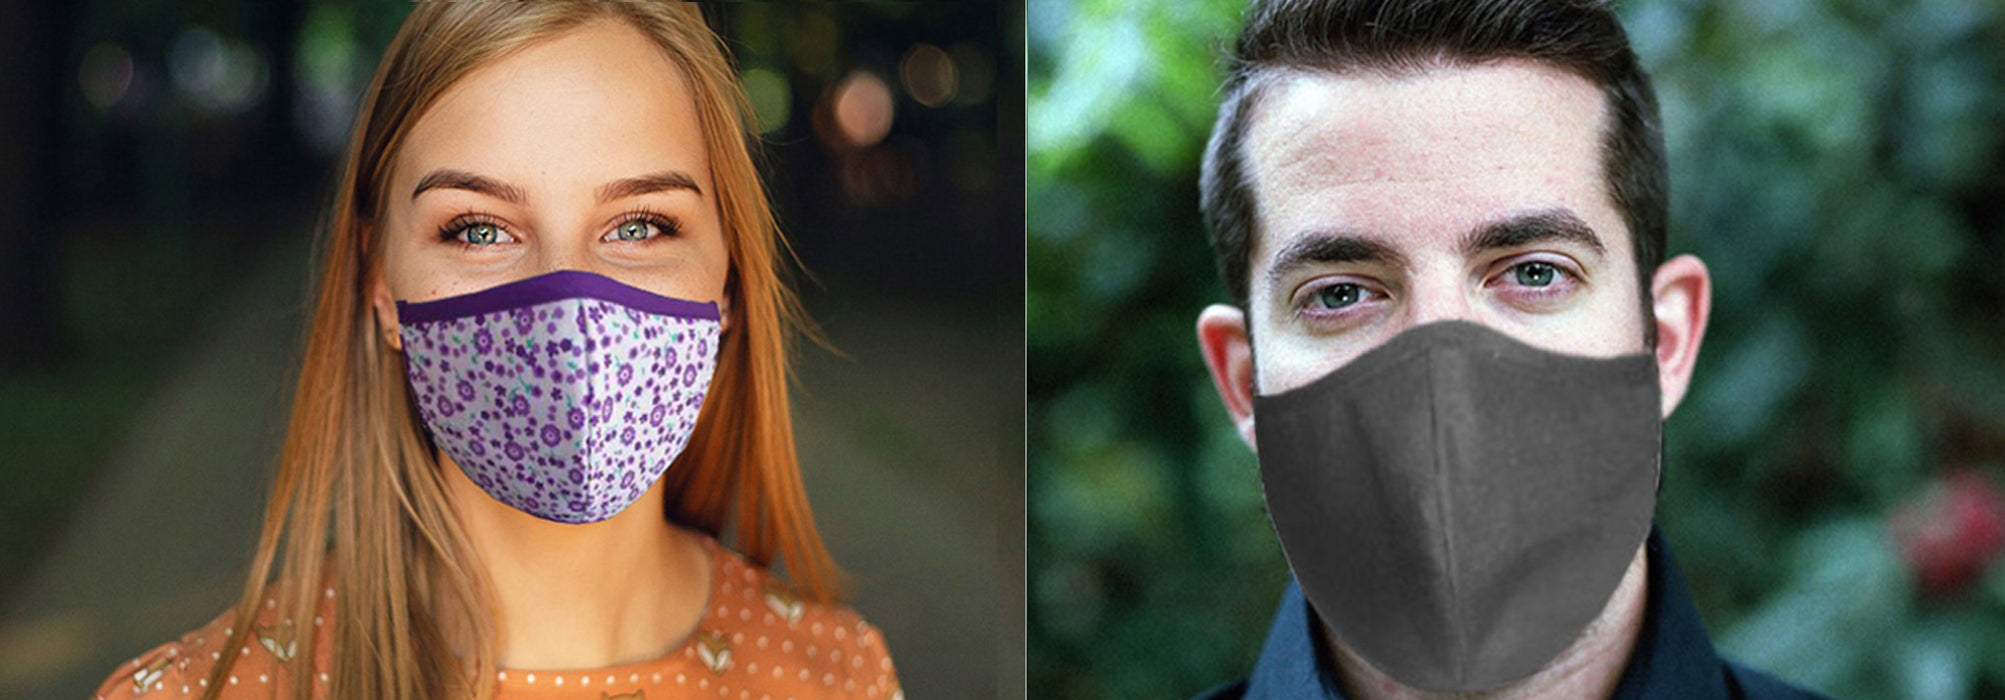 Protective masks:  how to use them?